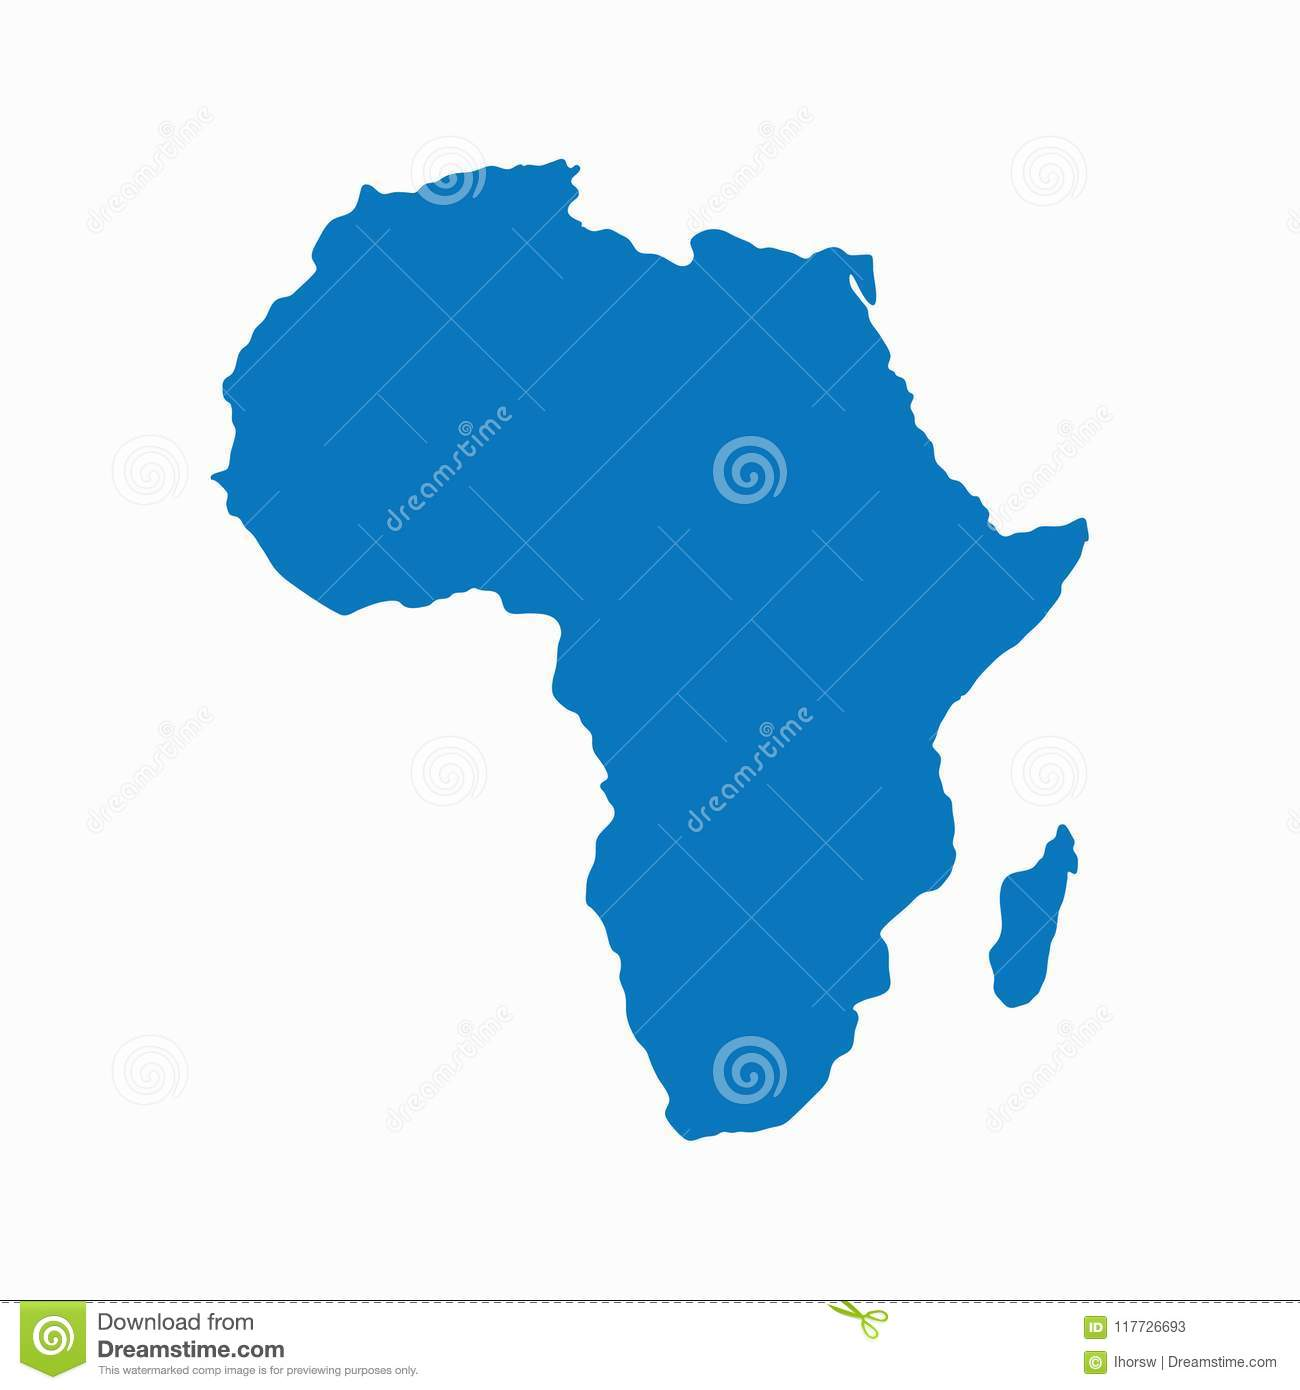 Africa Map Background.Blank Blue Similar Continent Africa Map Isolated On White Background